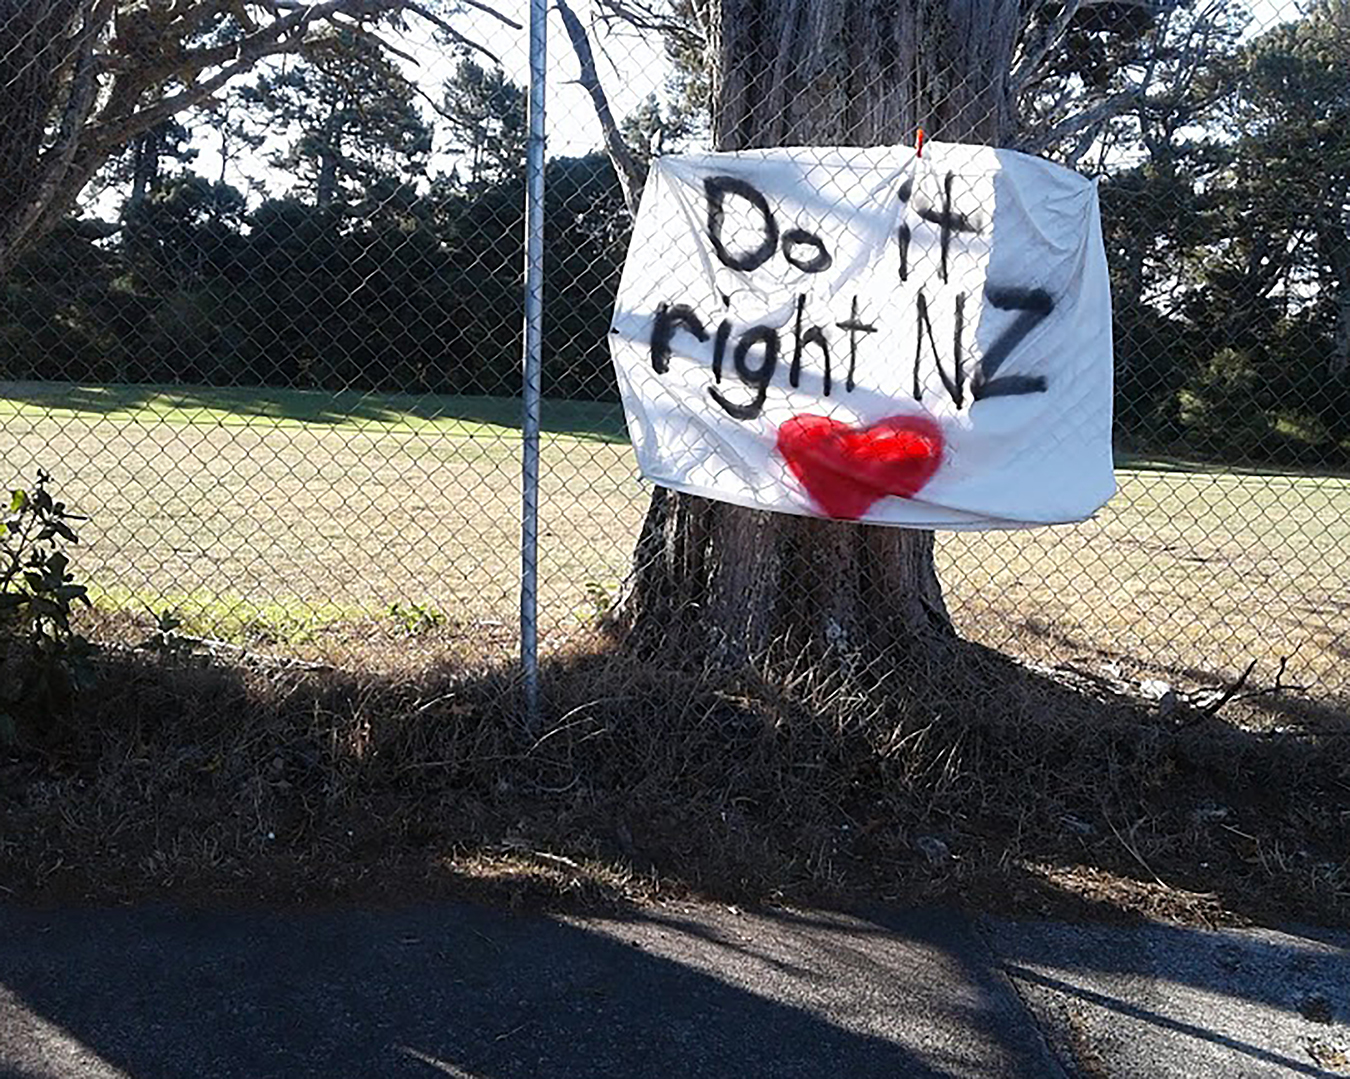 Banner in Green Bay, Auckland, March 2020. Photo by Susanna Trnka.